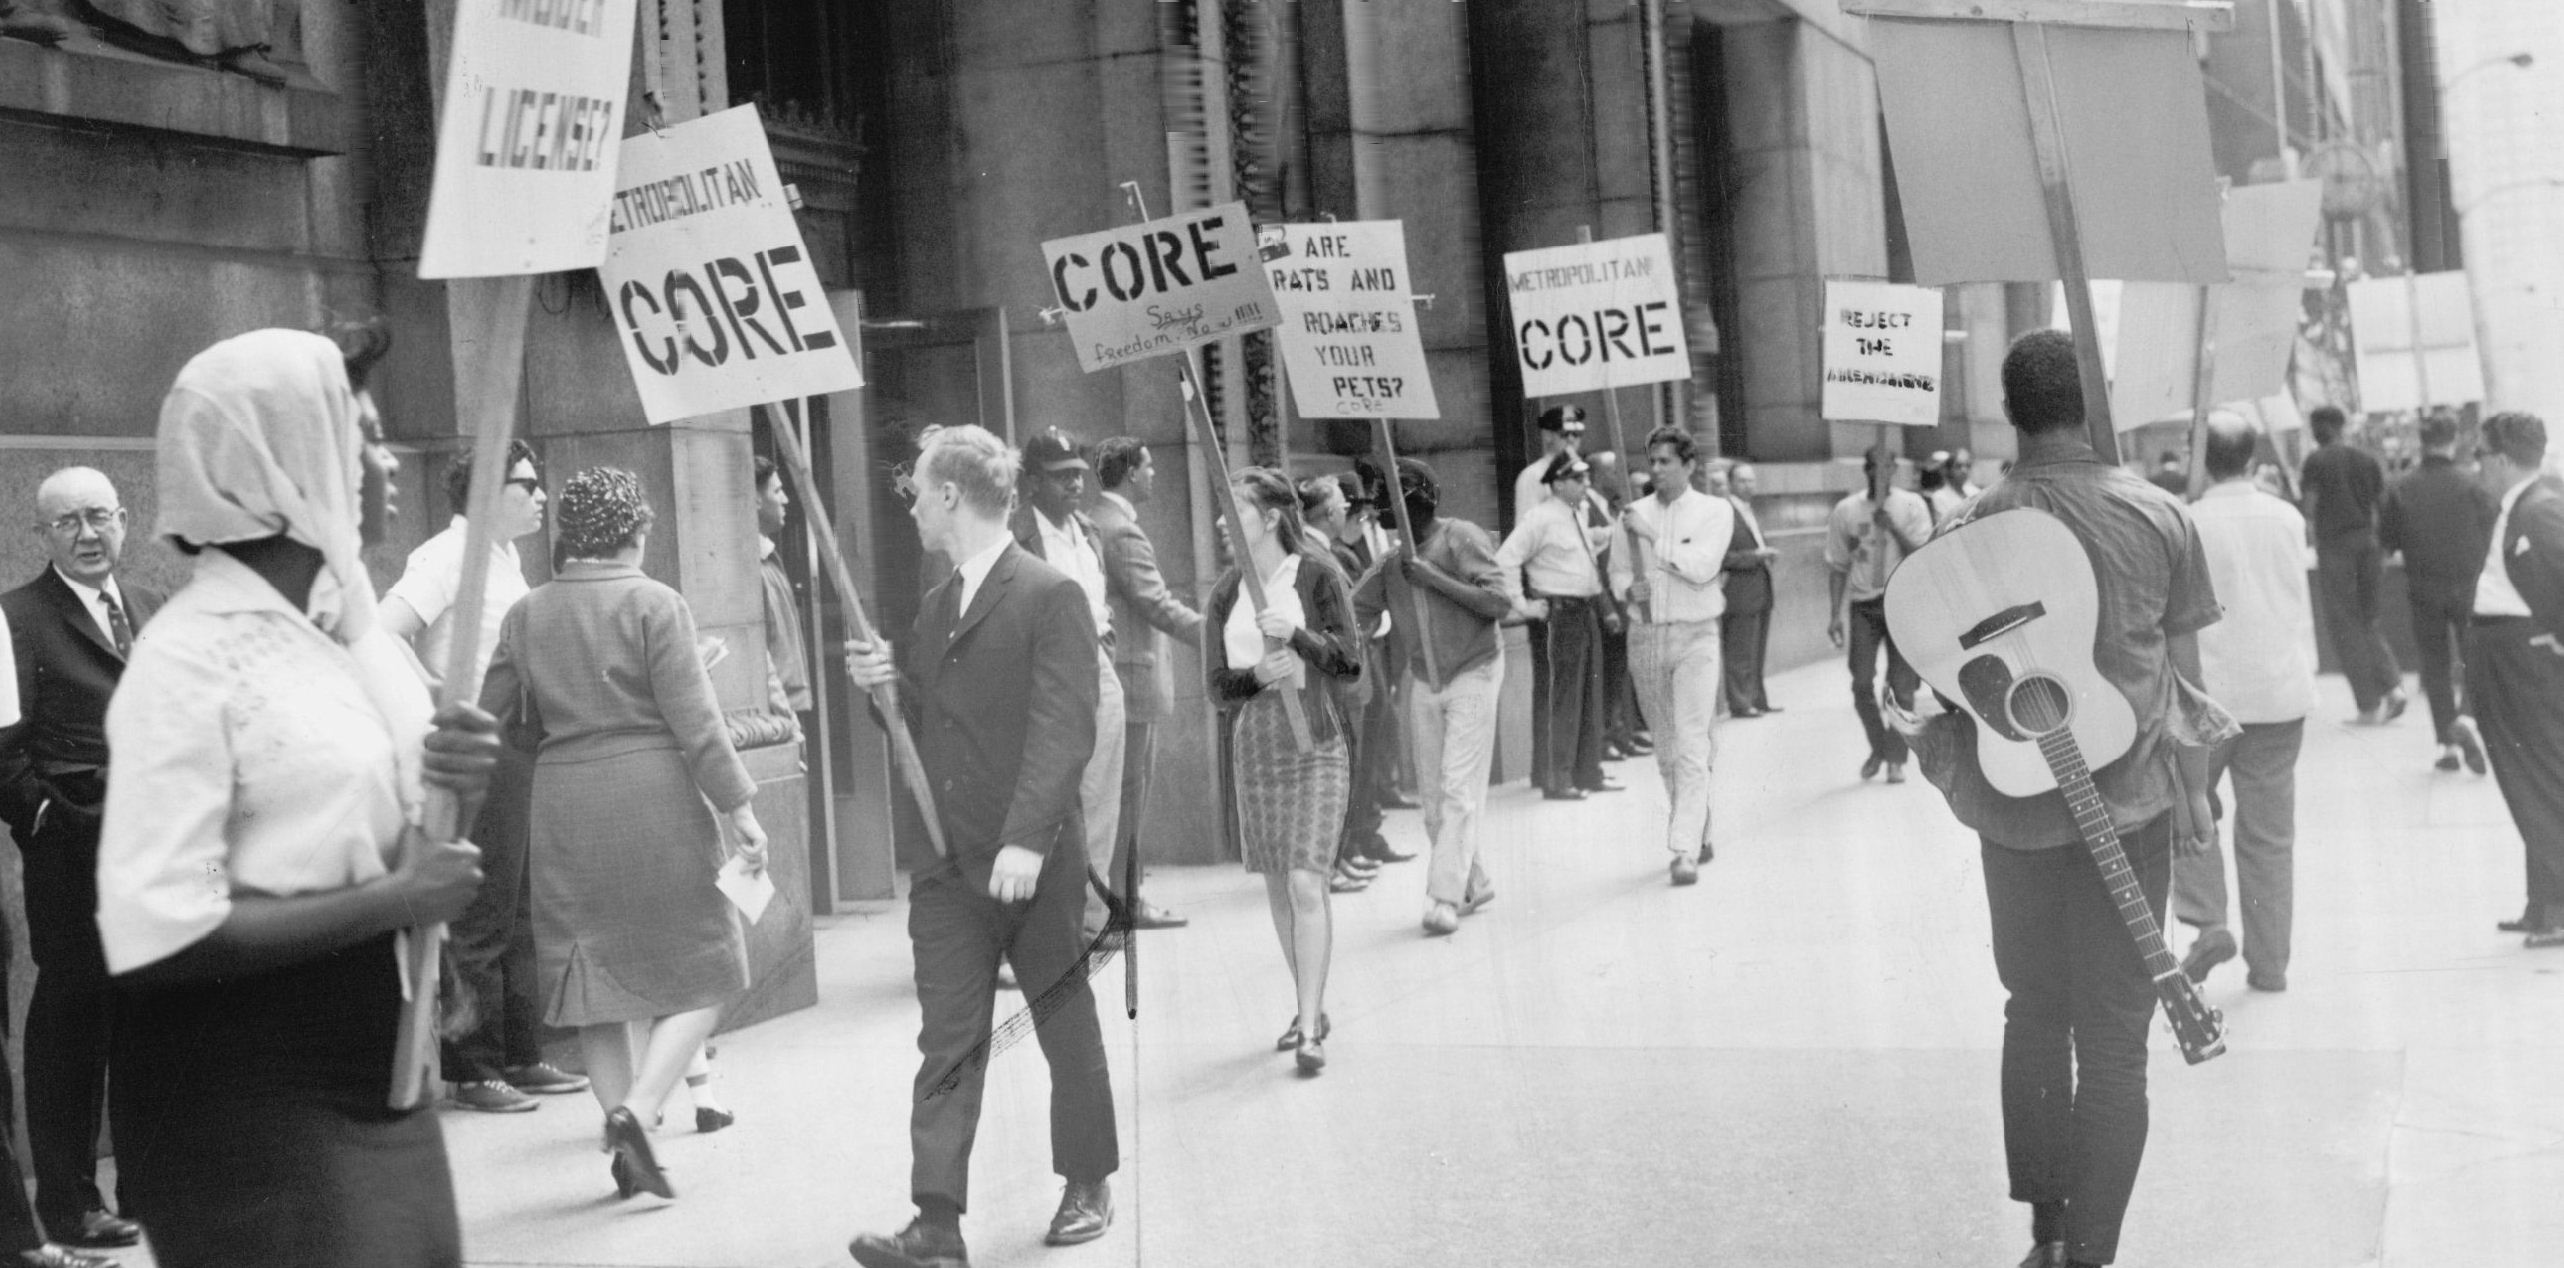 Picketers outside City Hall in 1964 protest a building code change that they said would further racial segregation in Chicago.